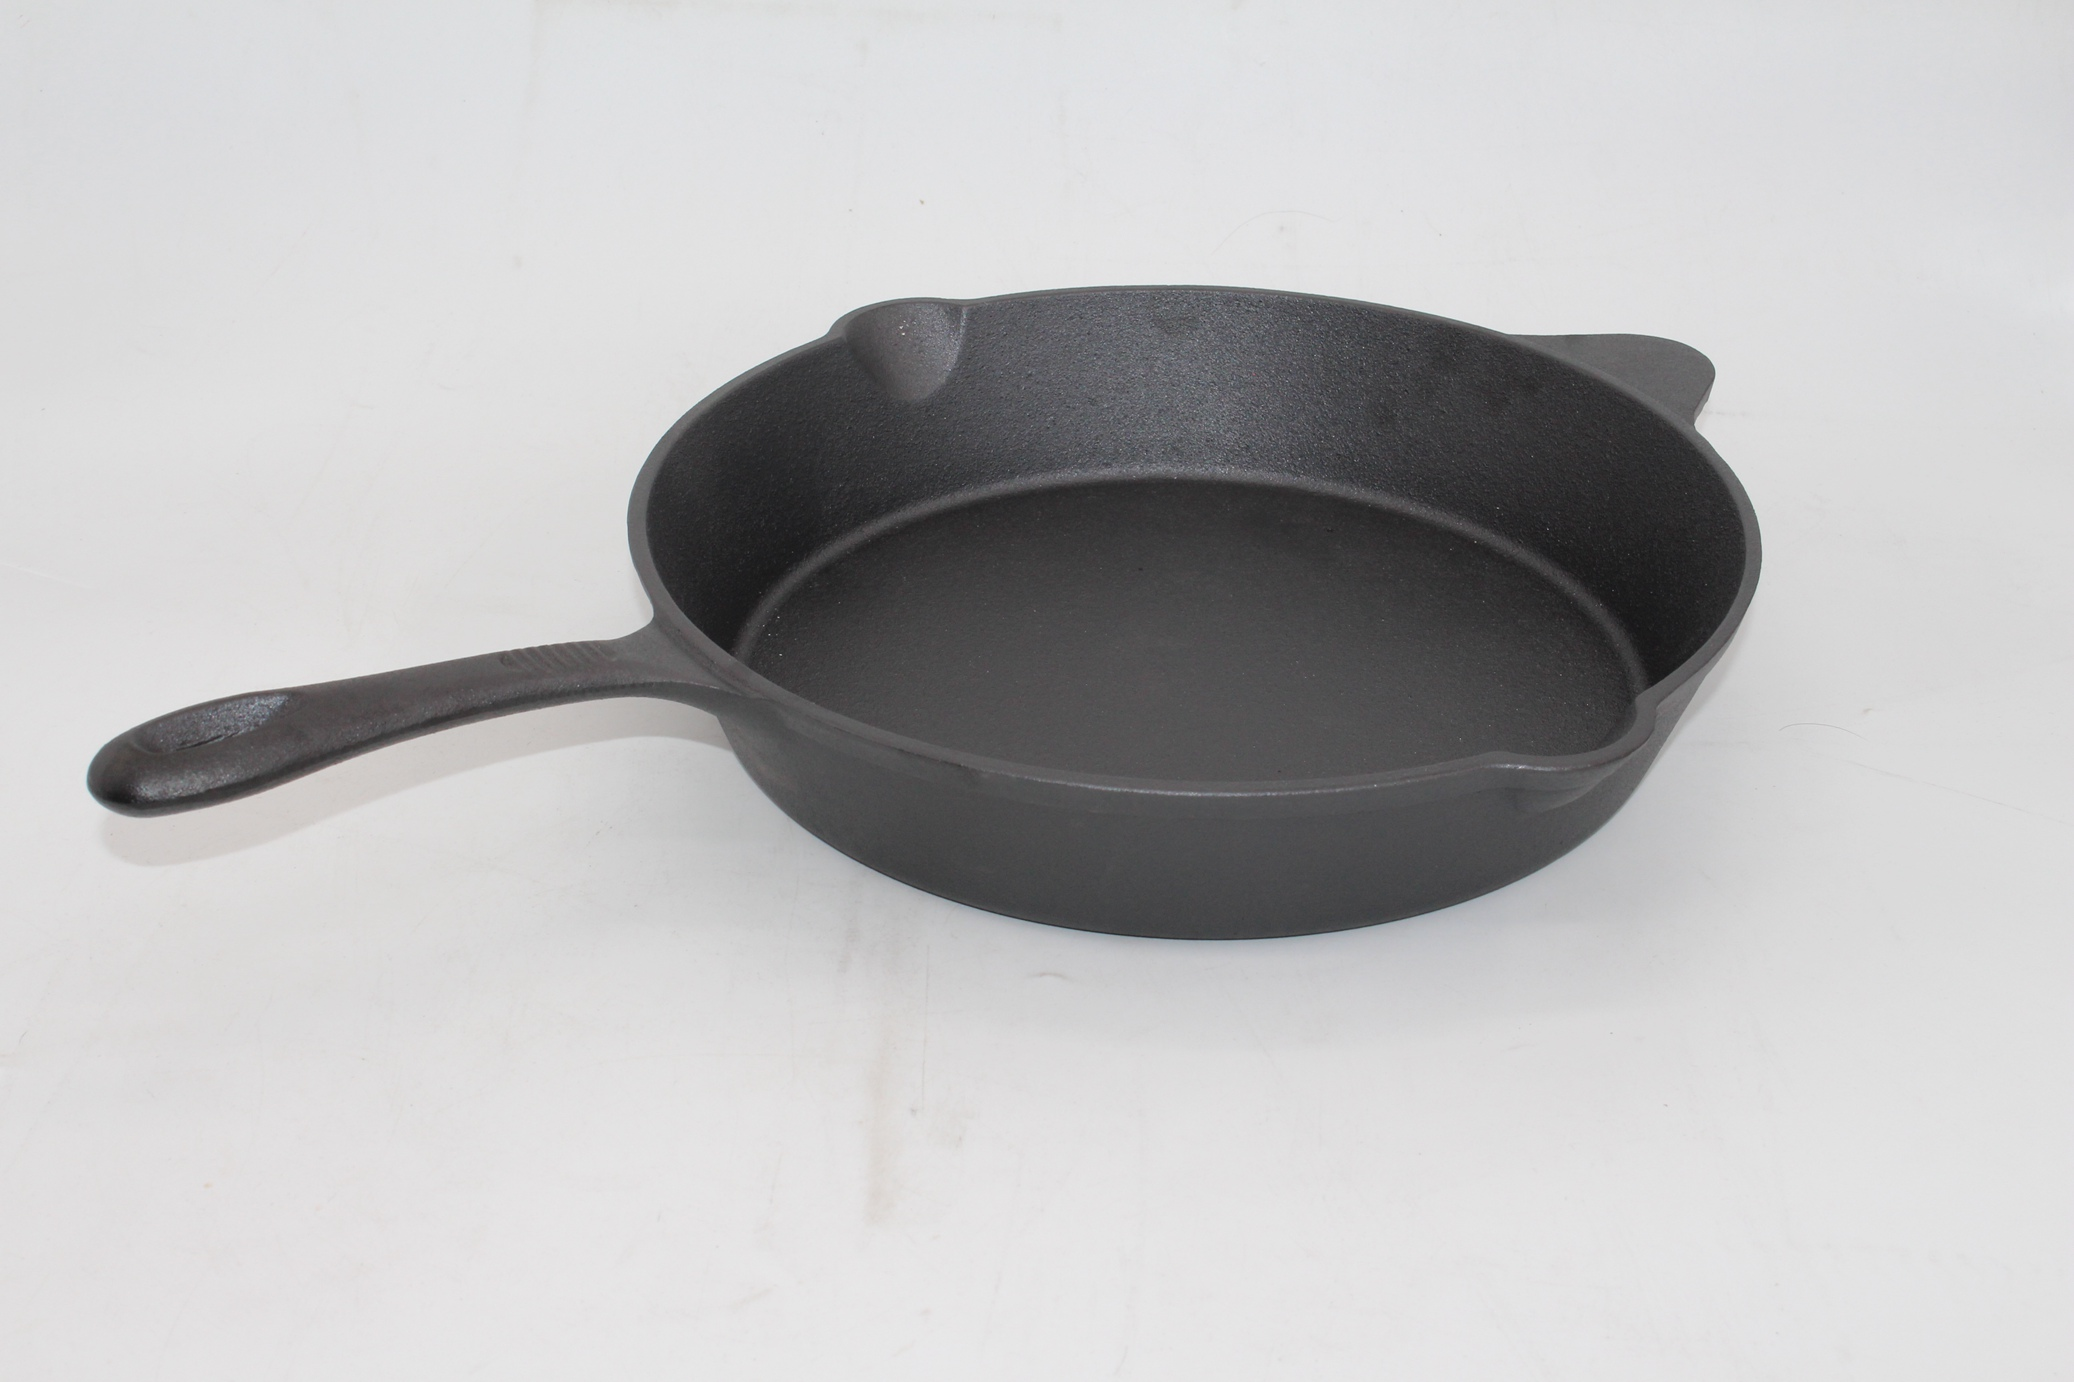 Cast iron pre-seasoned coating skillet